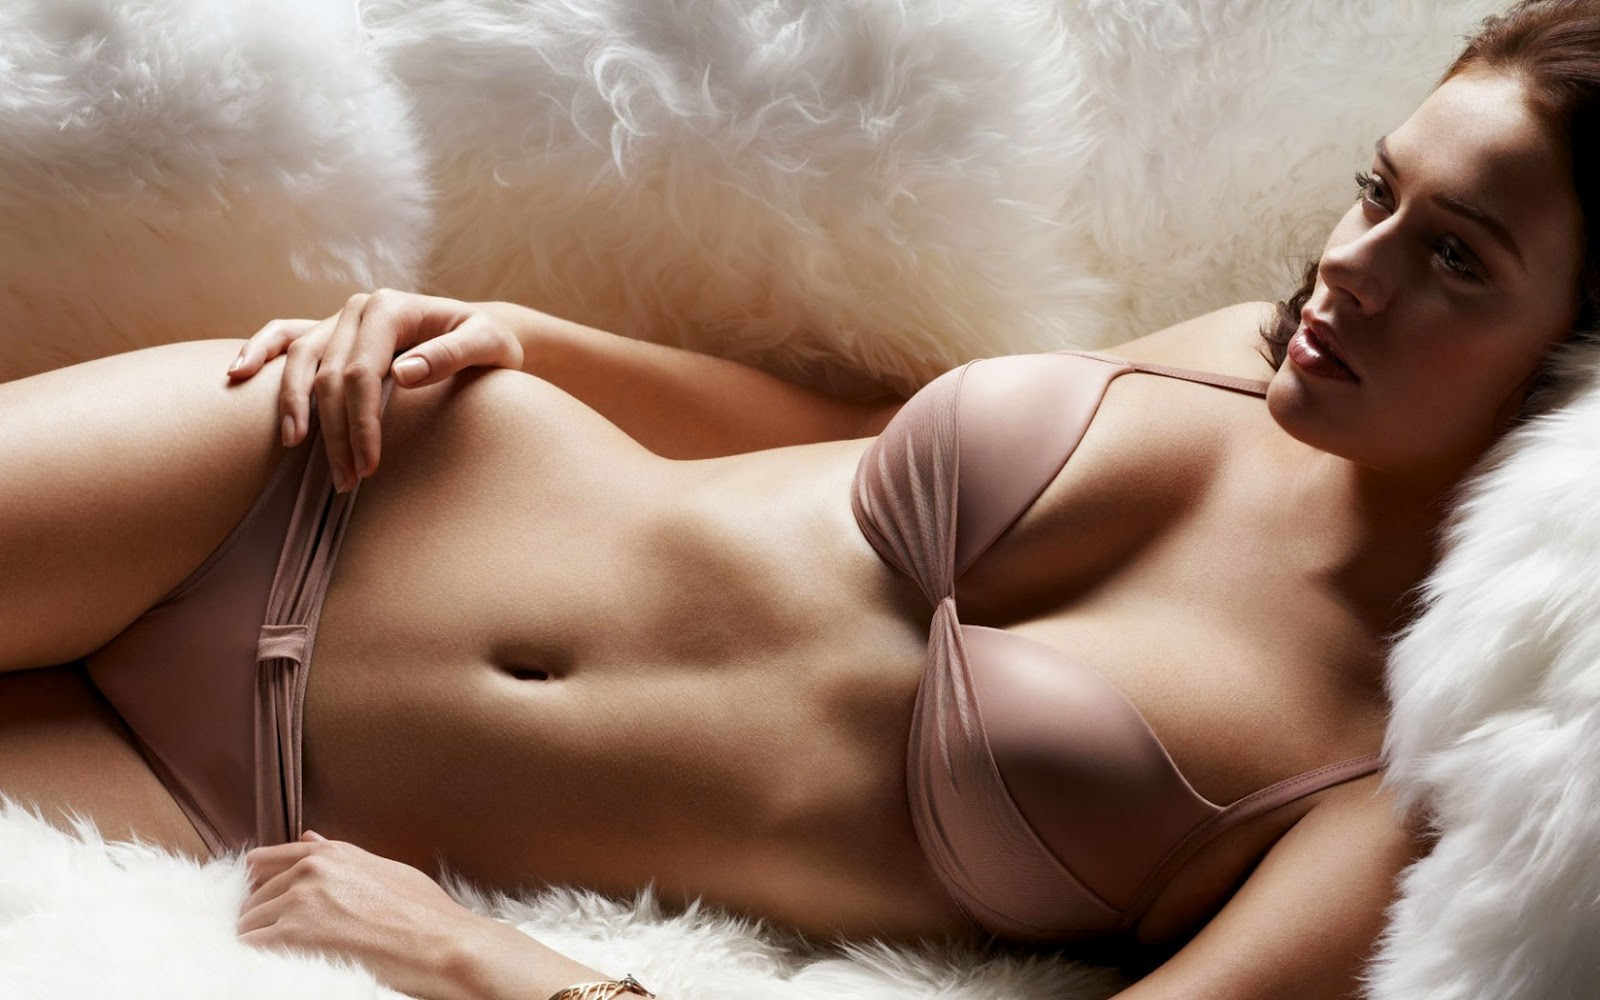 Features of escort girls that never fail to entice men